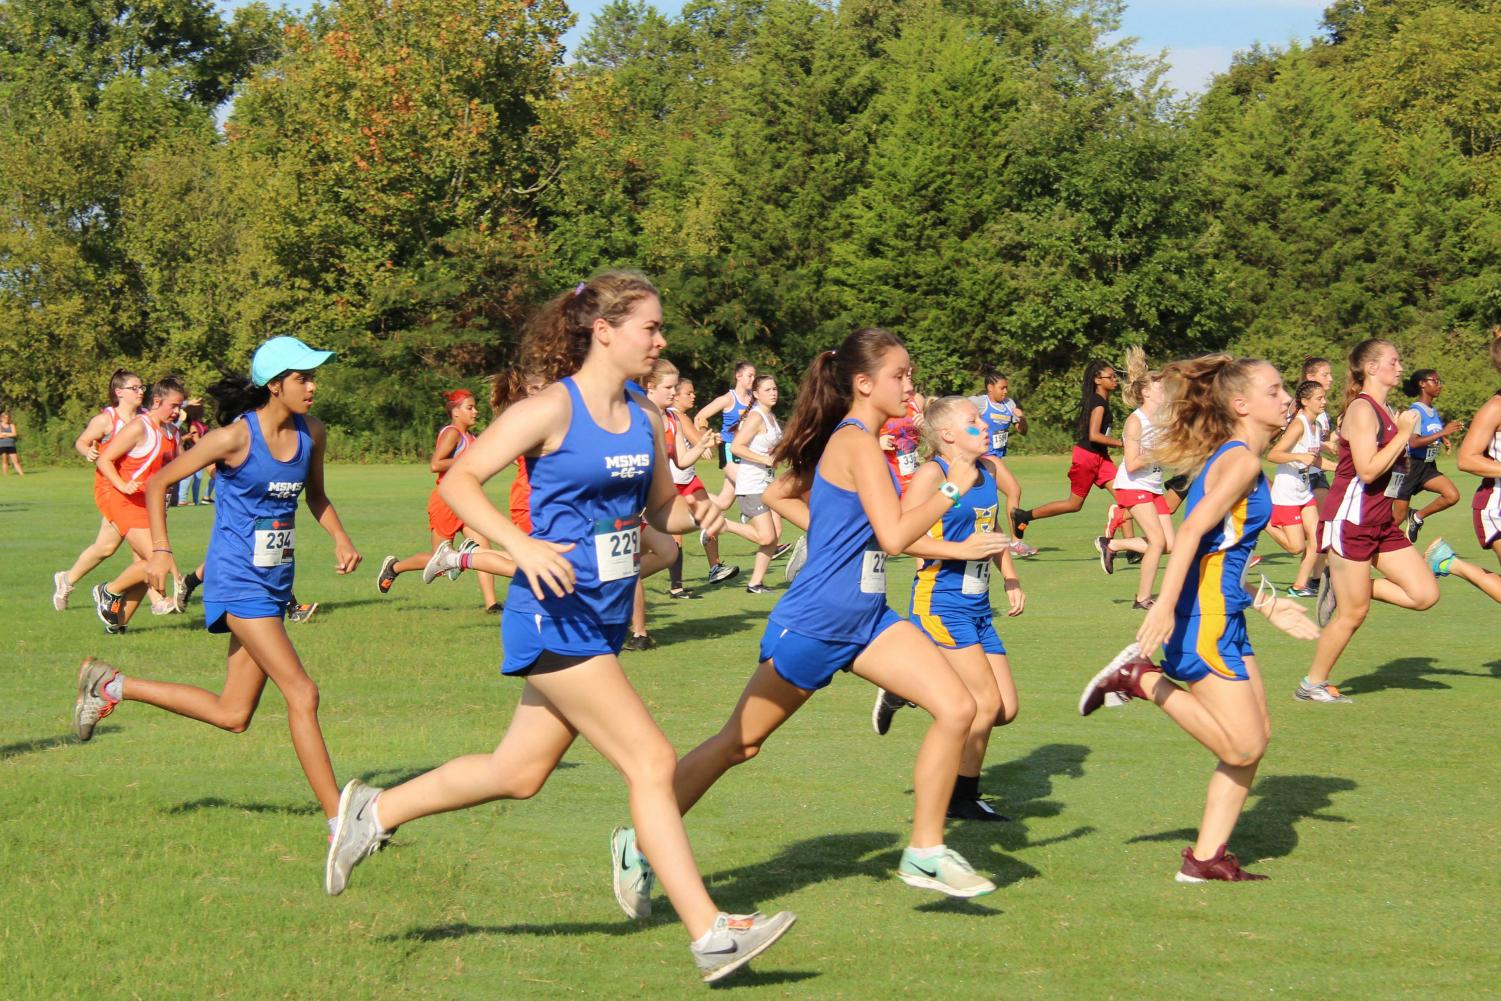 Hailey Desai, Grace-Anne Beech, and Linda Arnoldus begin their 5k race together.